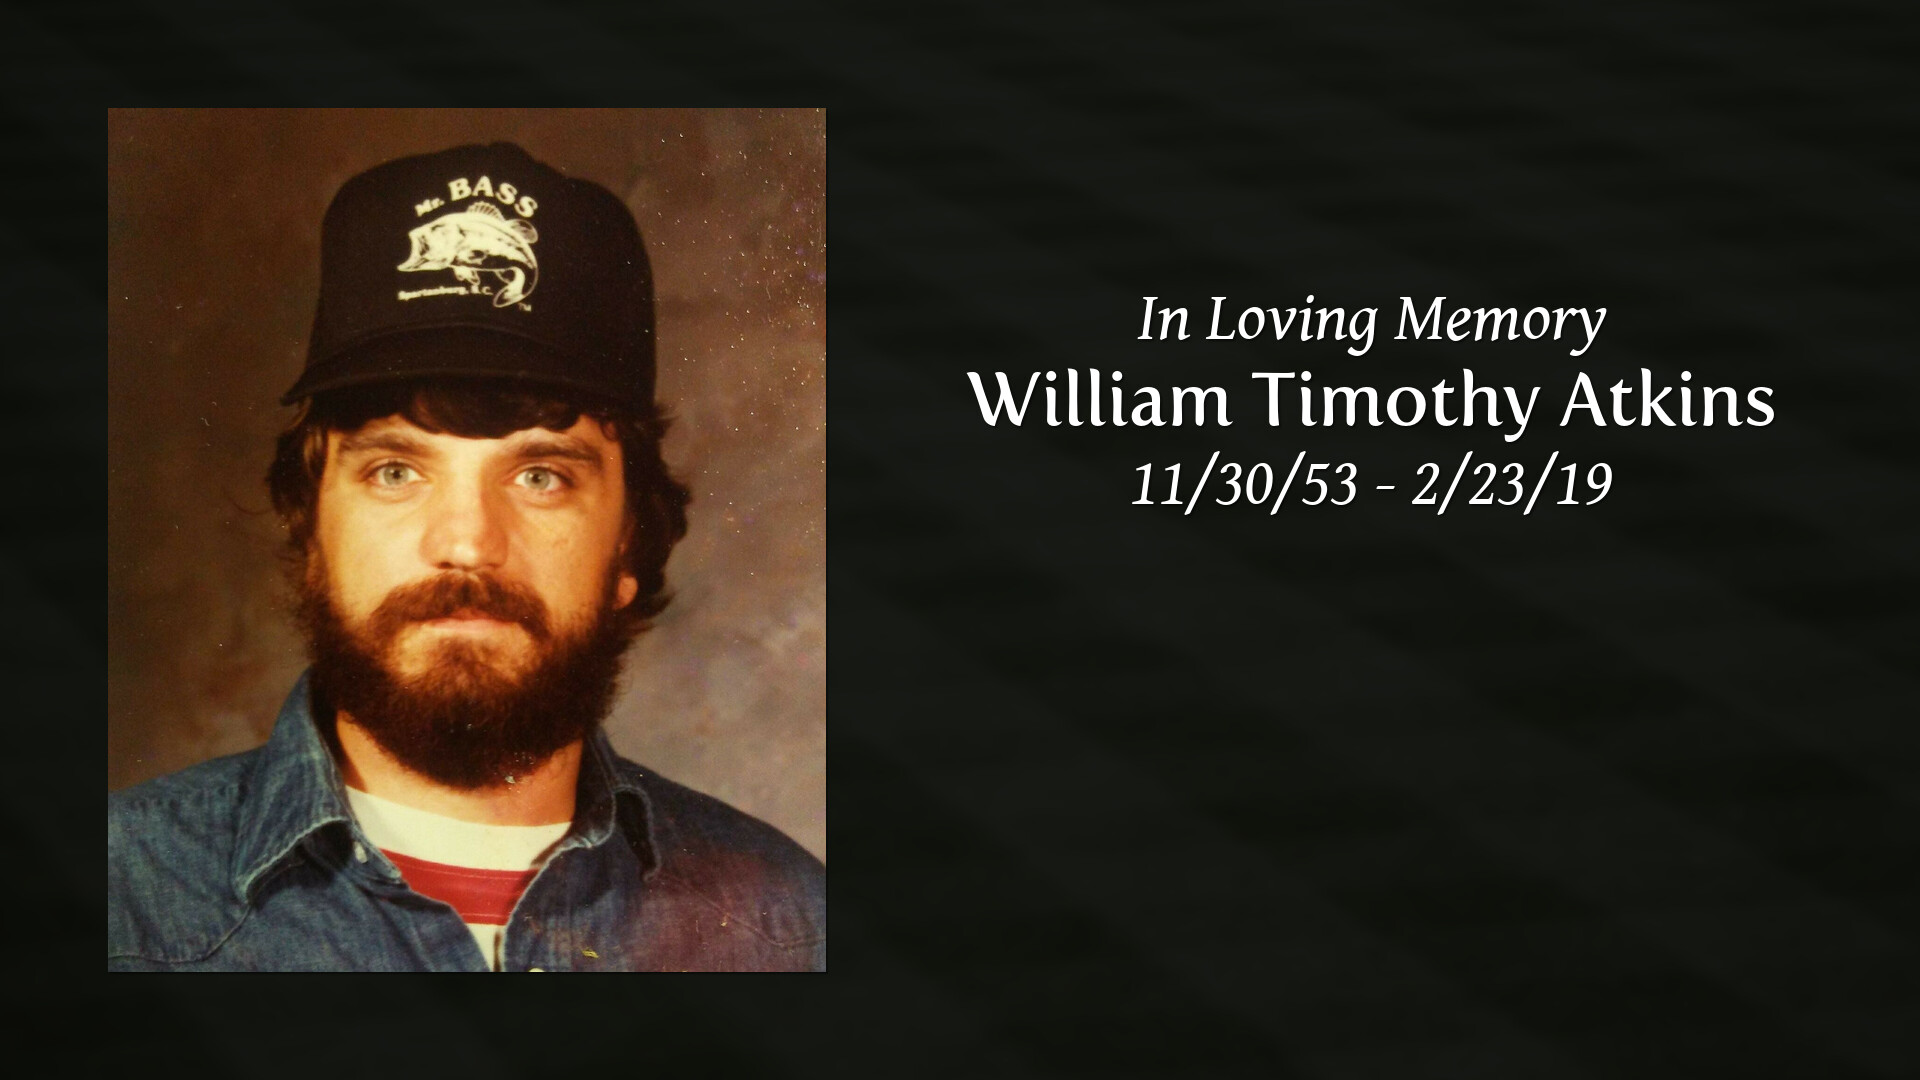 Obituary | William Timothy Atkins of Reidville, South